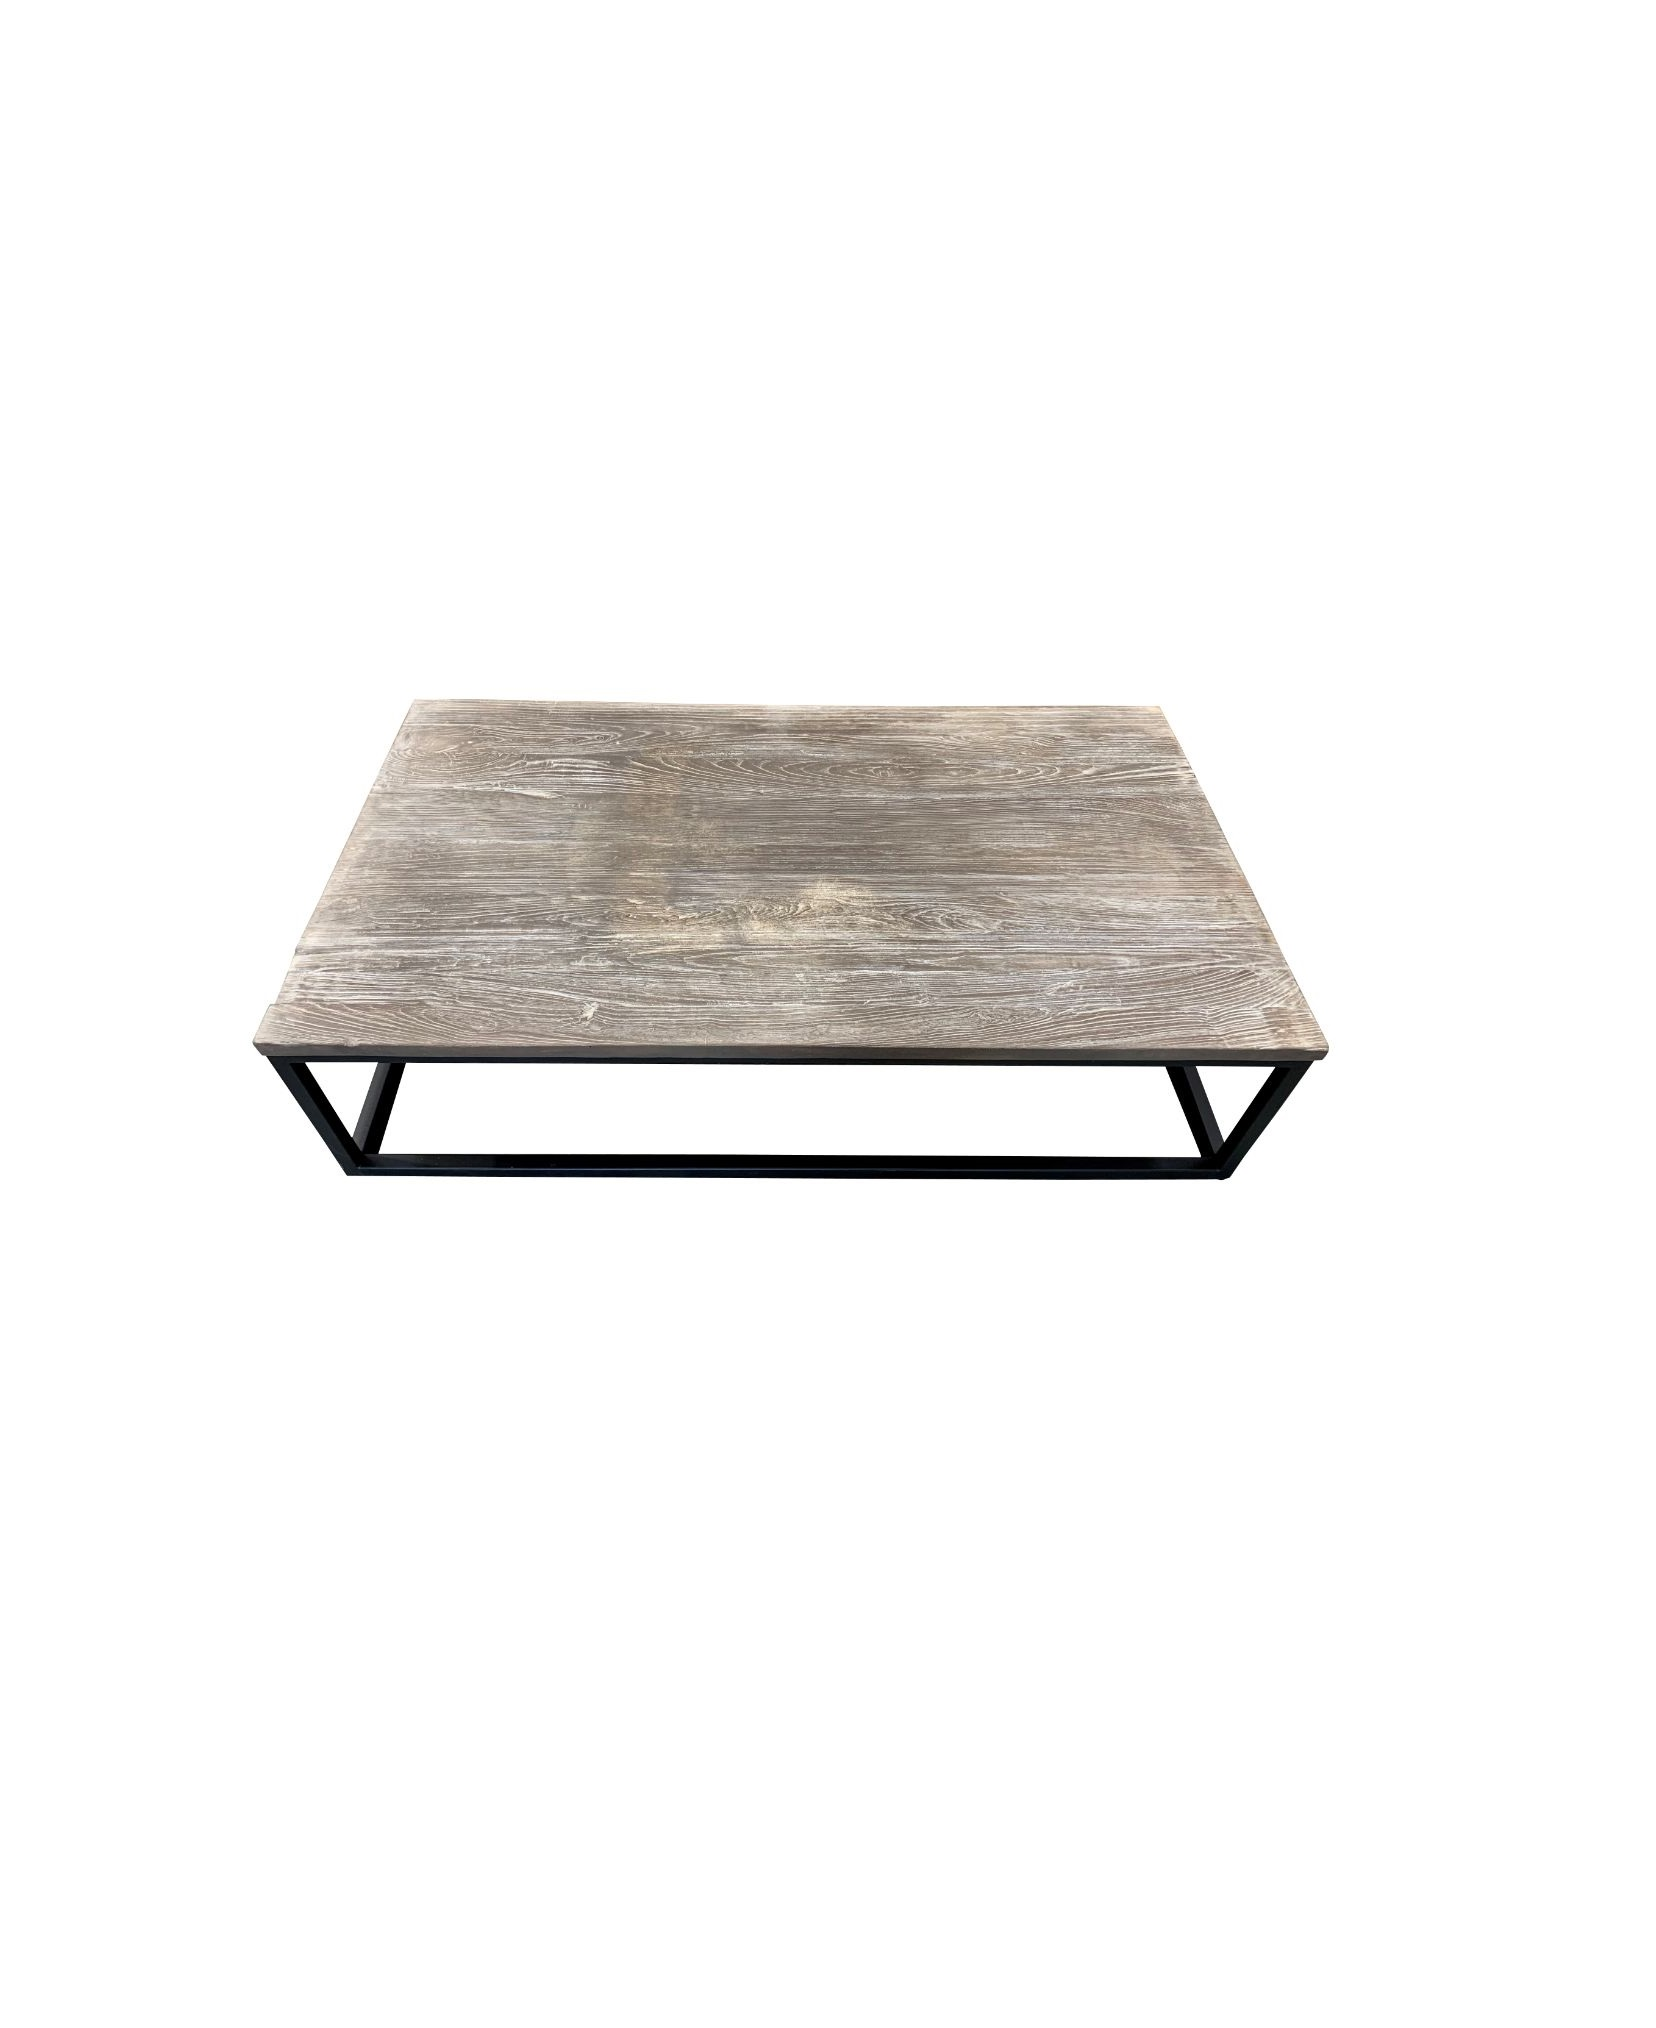 OUTDOOR COFFEE TABLE SQUARE FRAME